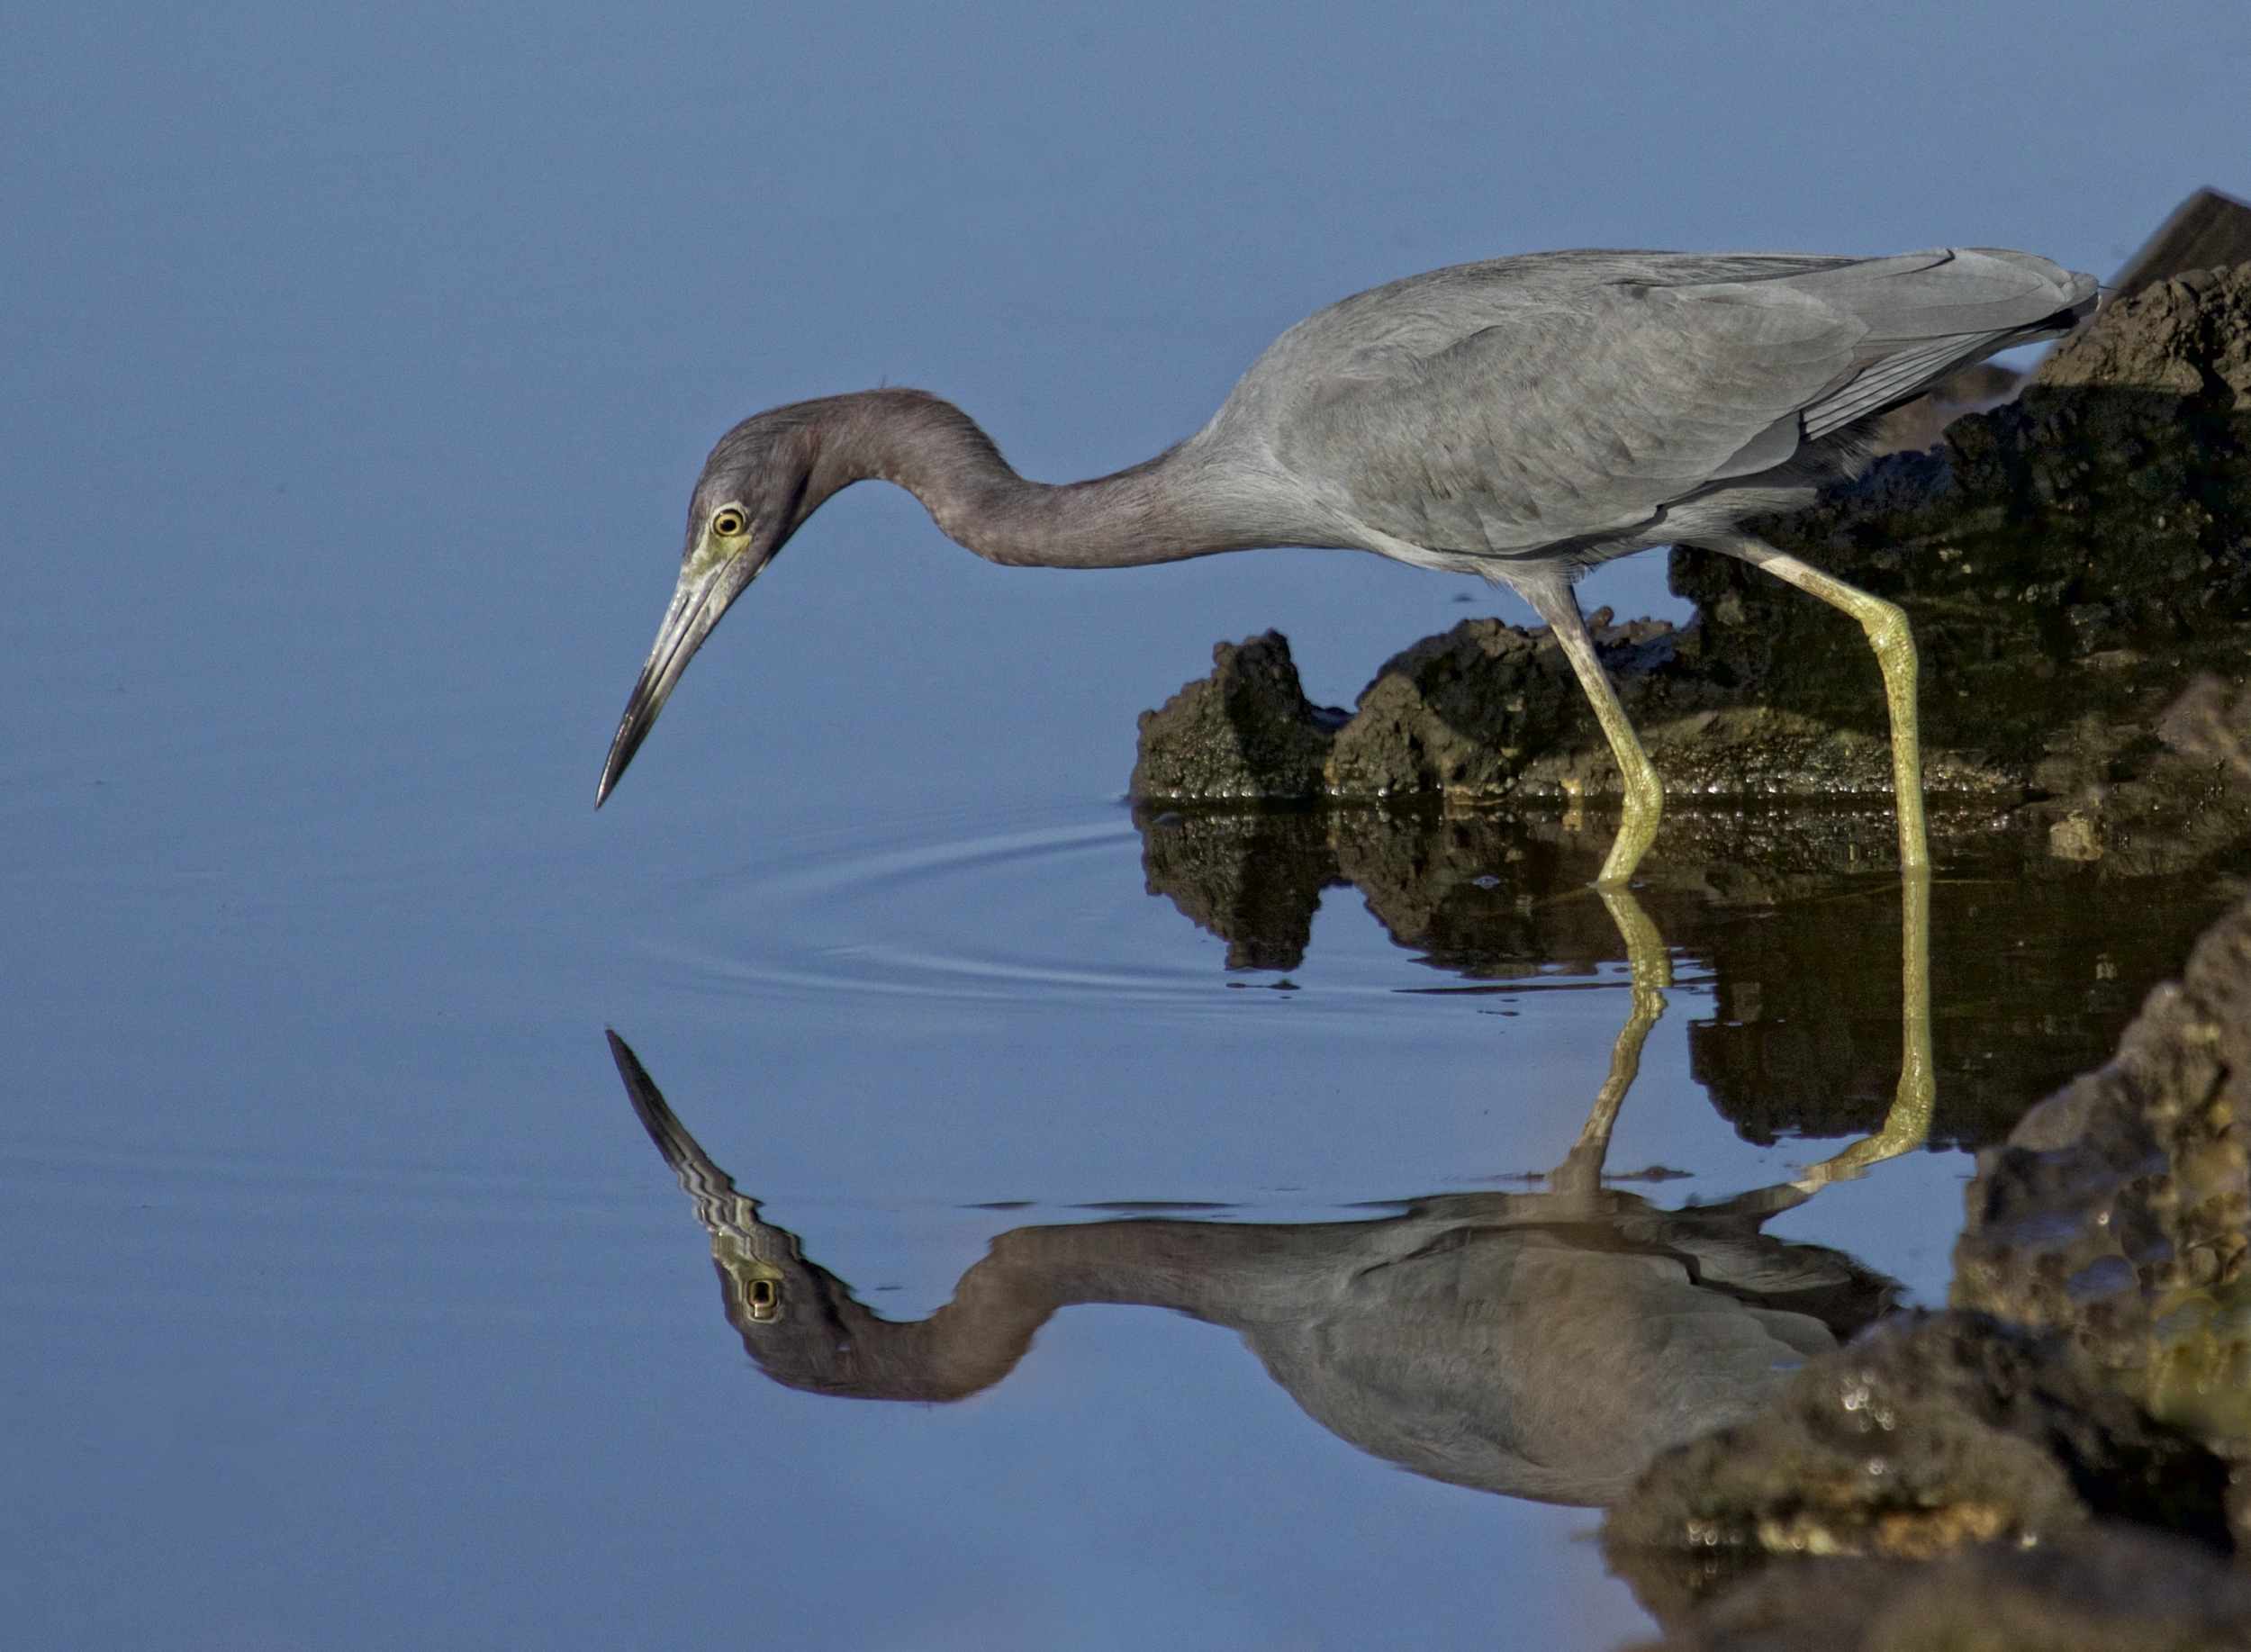 After careful recalculation Bob peers down and sees his reflection.. Six more weeks of great autumn weather coming to Florida!  Time to eat now!